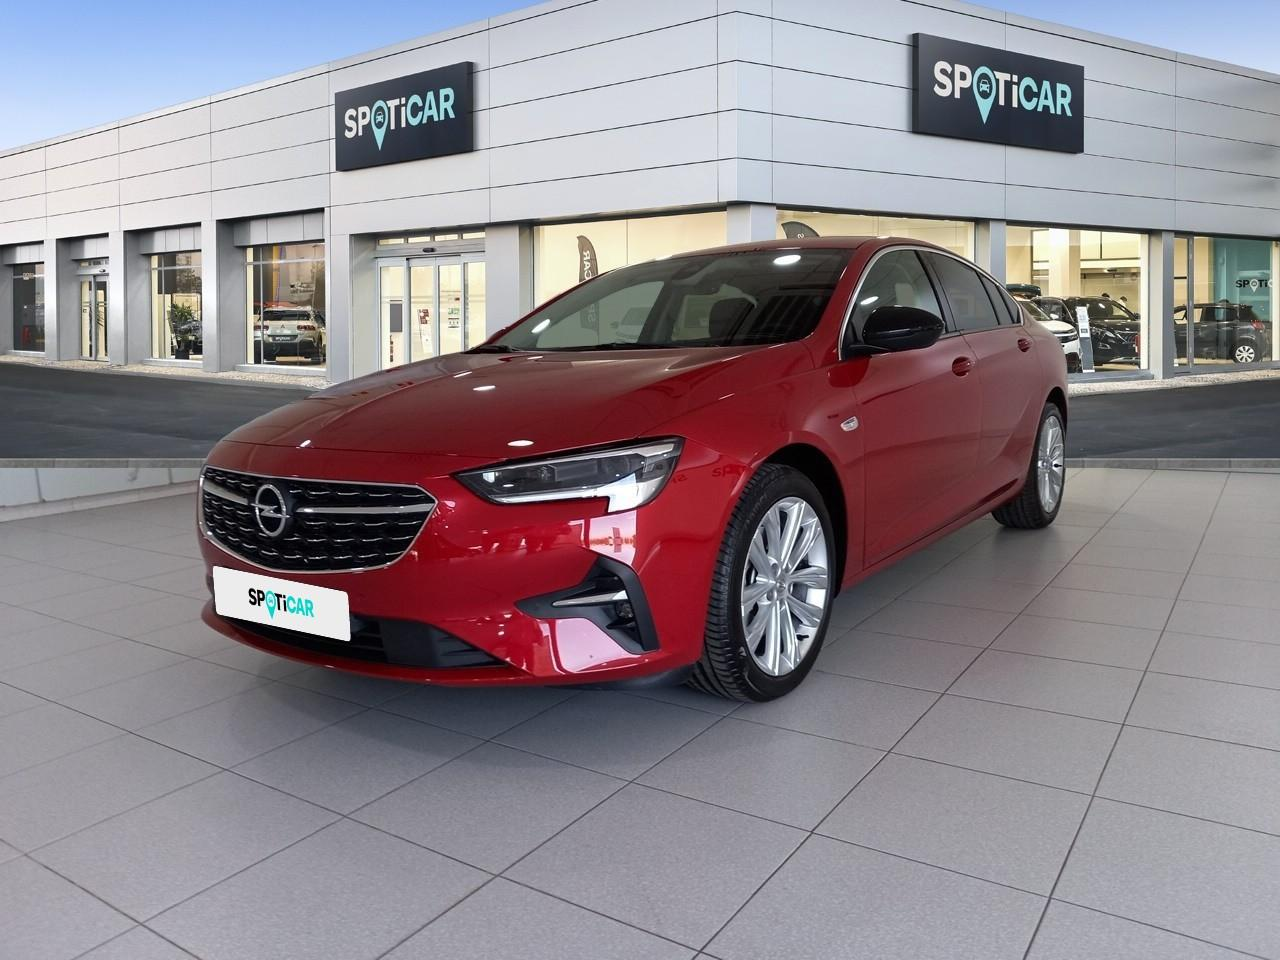 Opel INSIGNIA GS  1.5D DVH 90kW AT8 Business Elegance